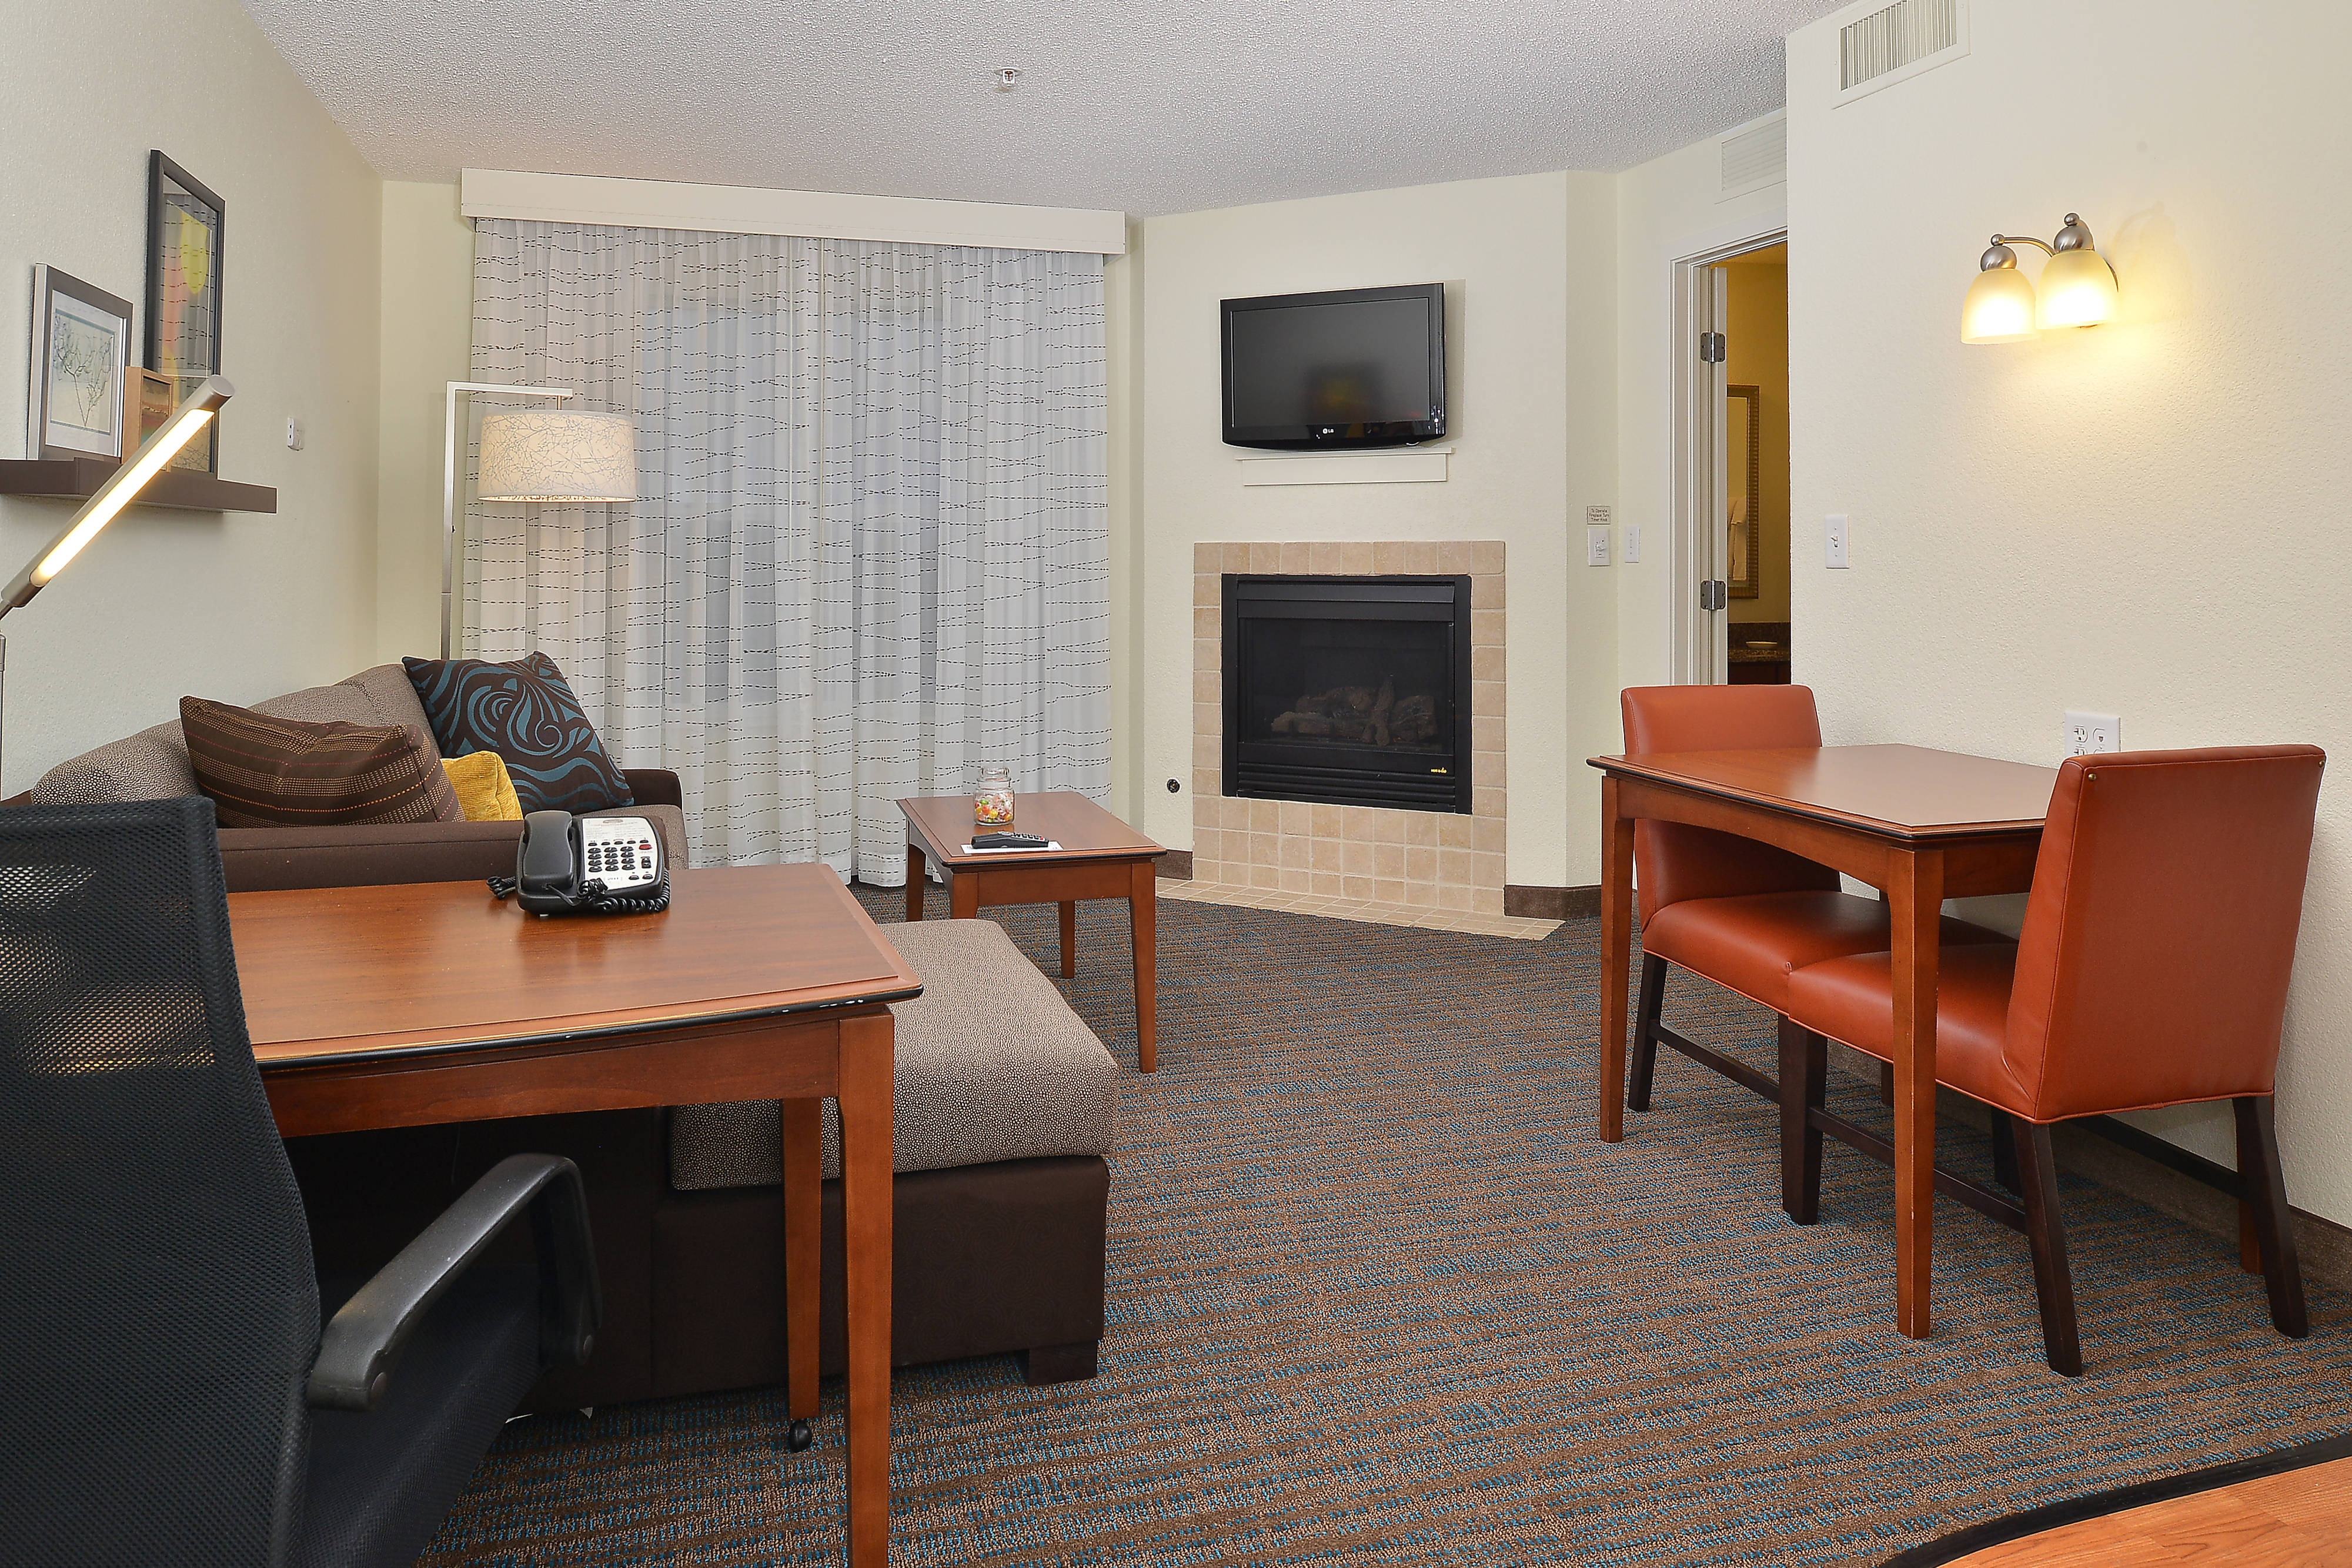 Loveland Colorado Hotel Suite with Fireplace